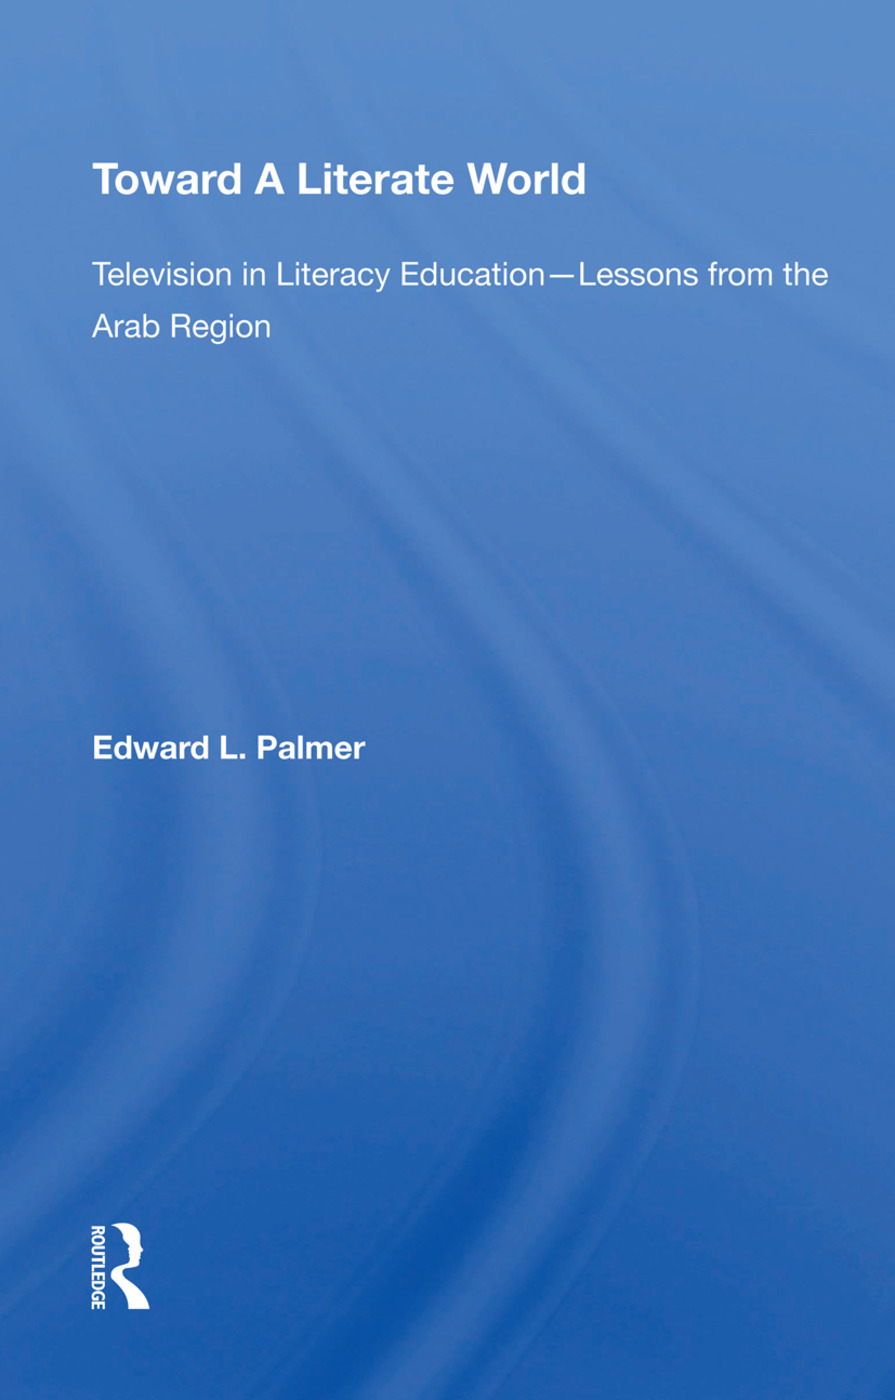 Toward A Literate World: Television in Literacy Education: Lessons from the Arab Region book cover